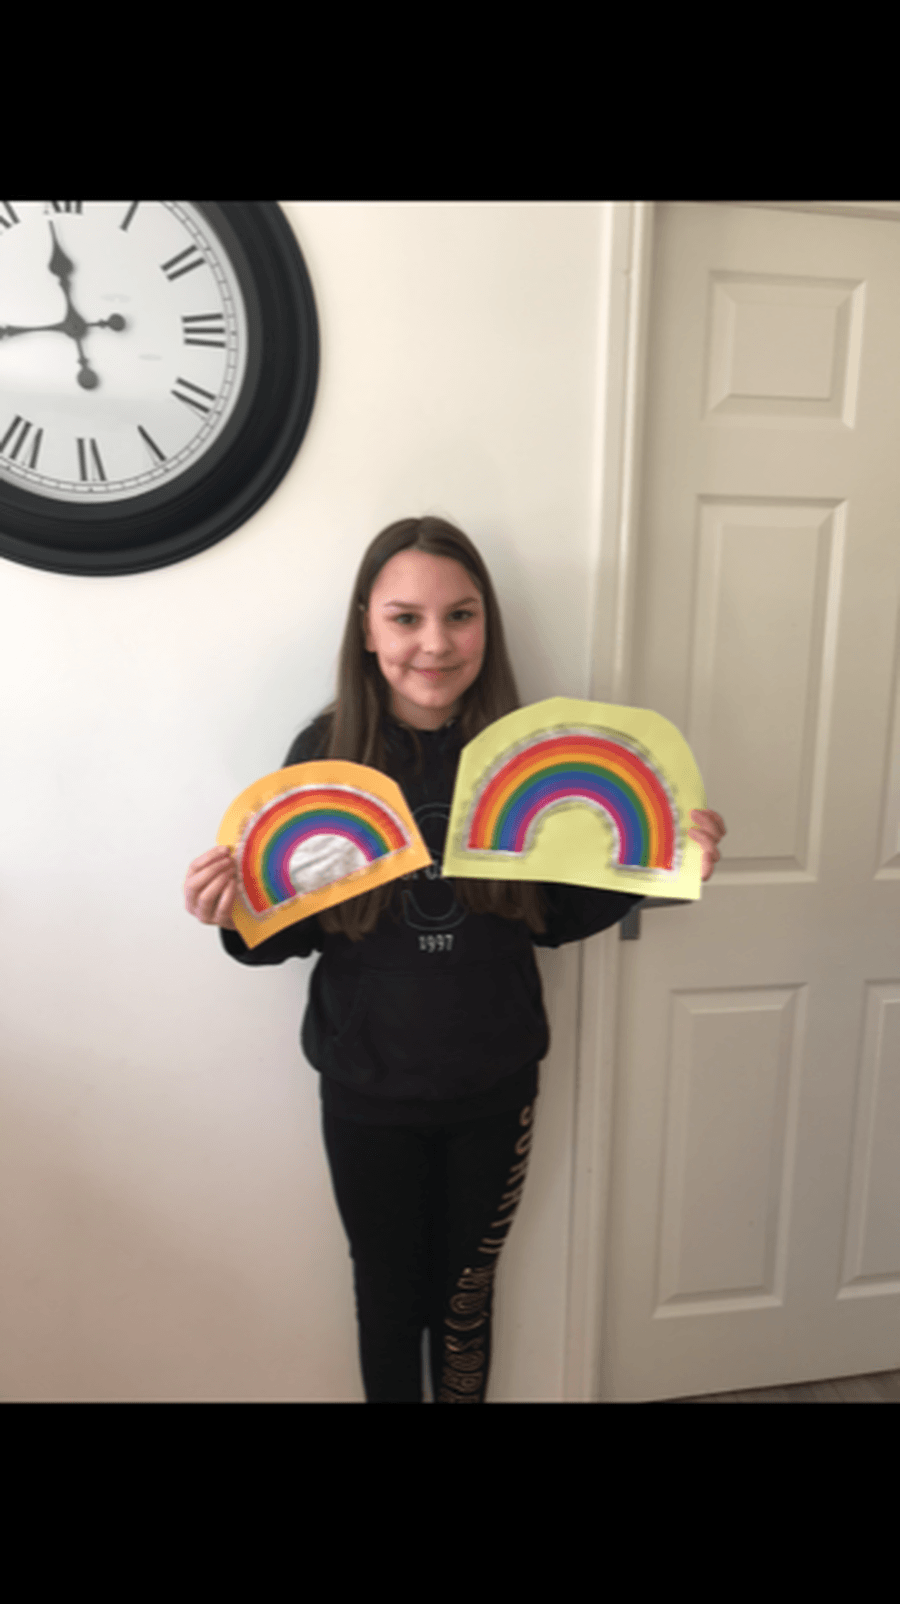 Memmi with her beautiful rainbows!